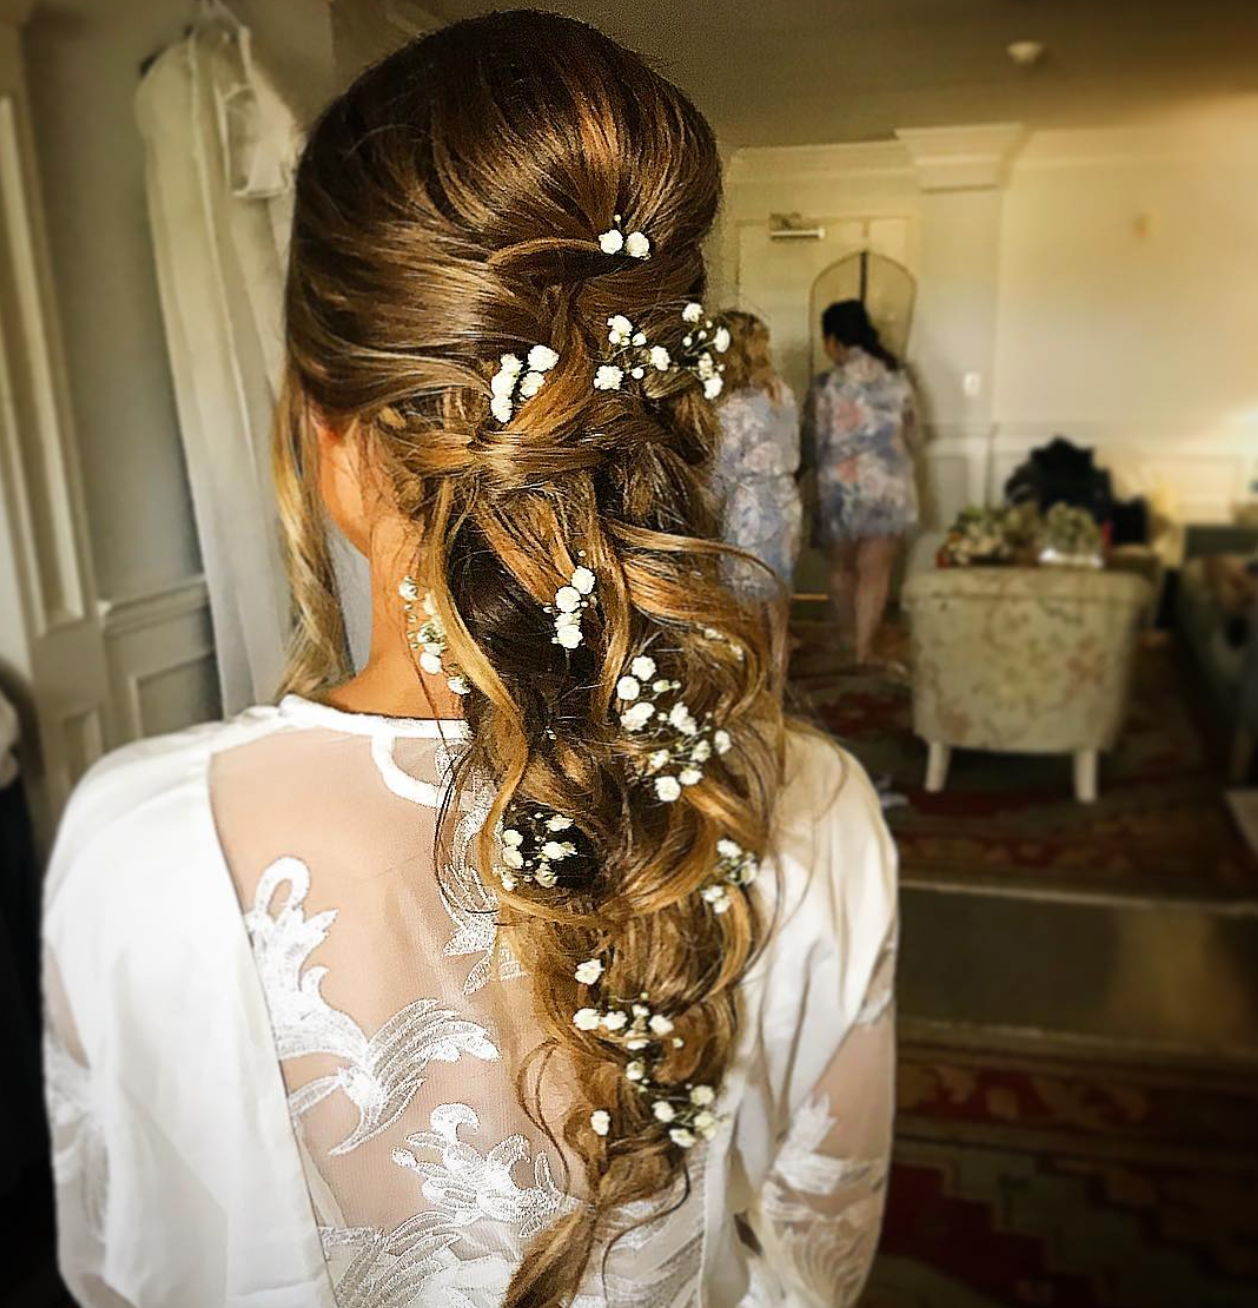 5 Things Every Bride Should Know Before Her Wedding Hair and Makeup Trial